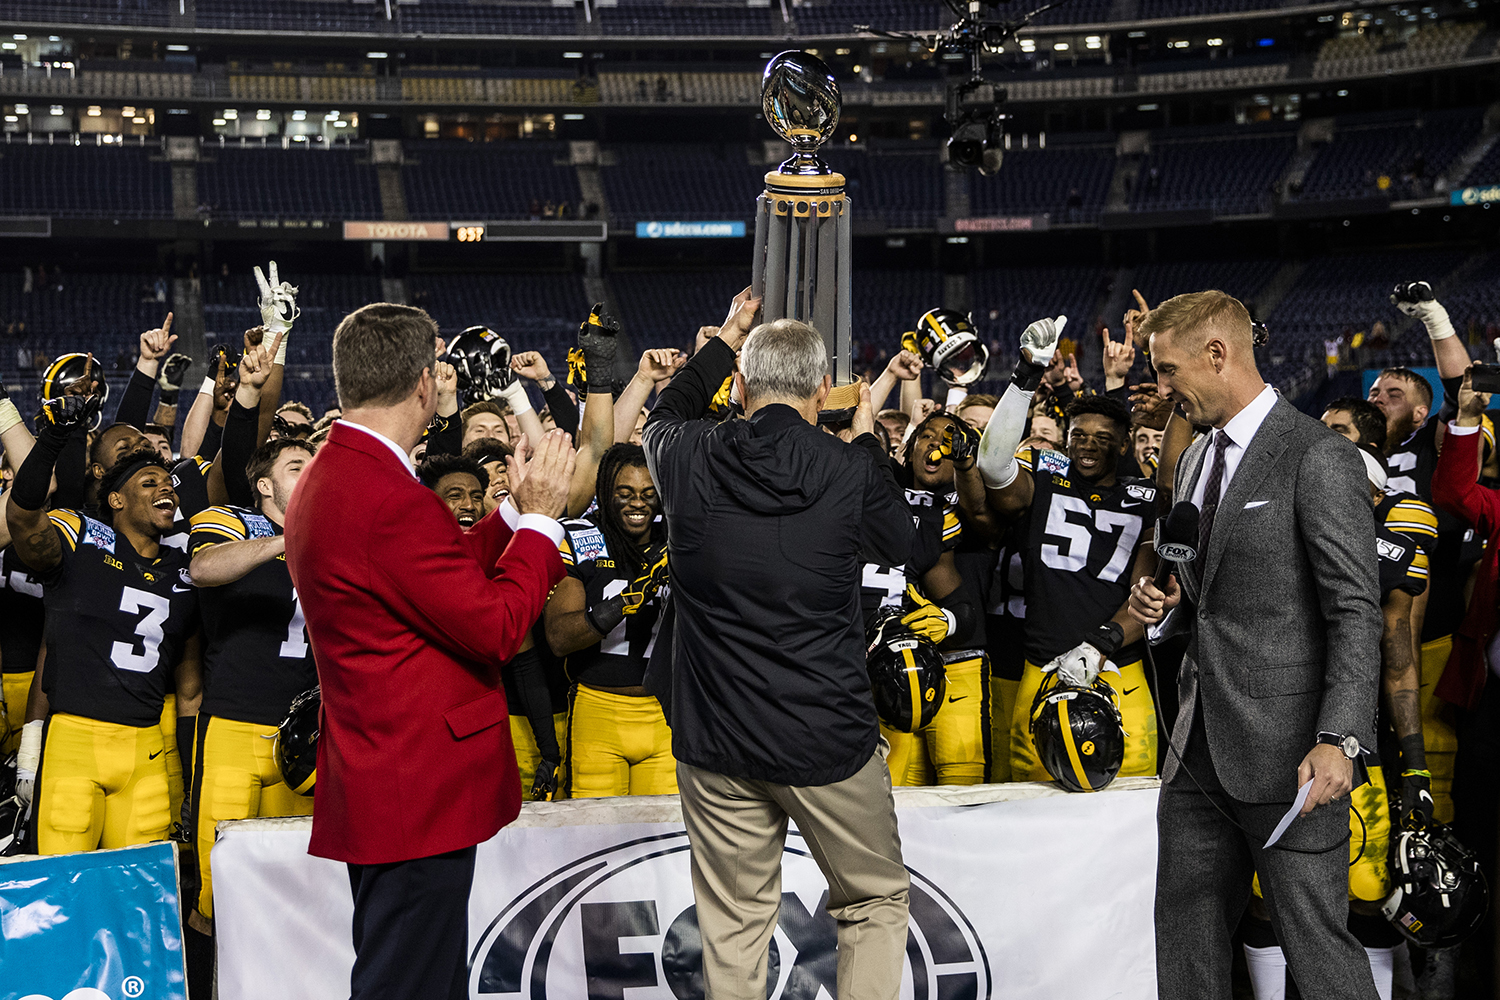 Iowa head coach Kirk Ferentz presents the trophy after the Holiday Bowl game between Iowa and USC at SDCCU Stadium on Friday, Dec. 27, 2019. The Hawkeyes defeated the Trojans, 49-24.